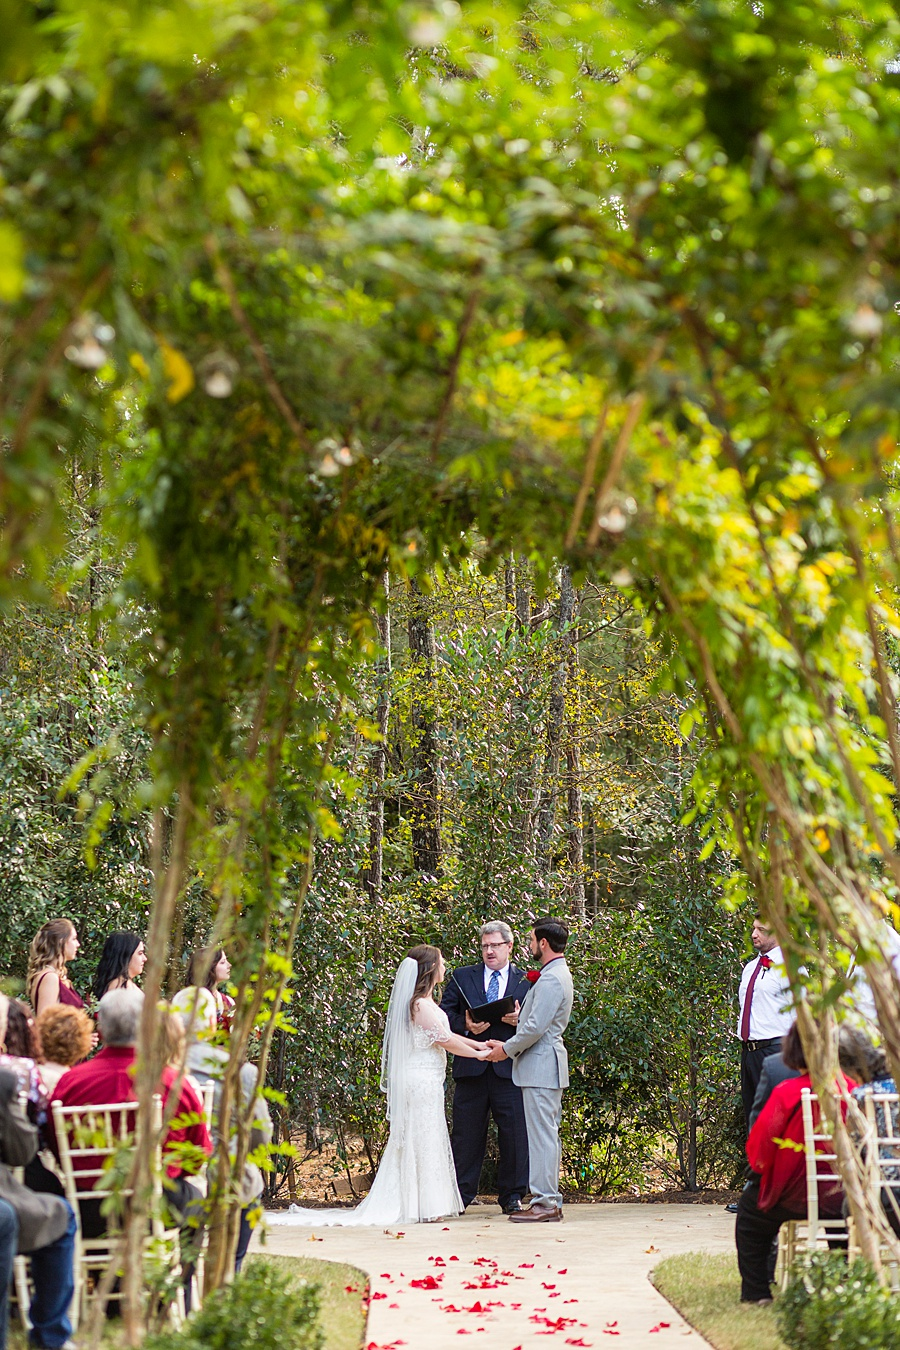 Stacy Anderson Photography Lodge at Mound Creek Houston wedding photographer_0019.jpg